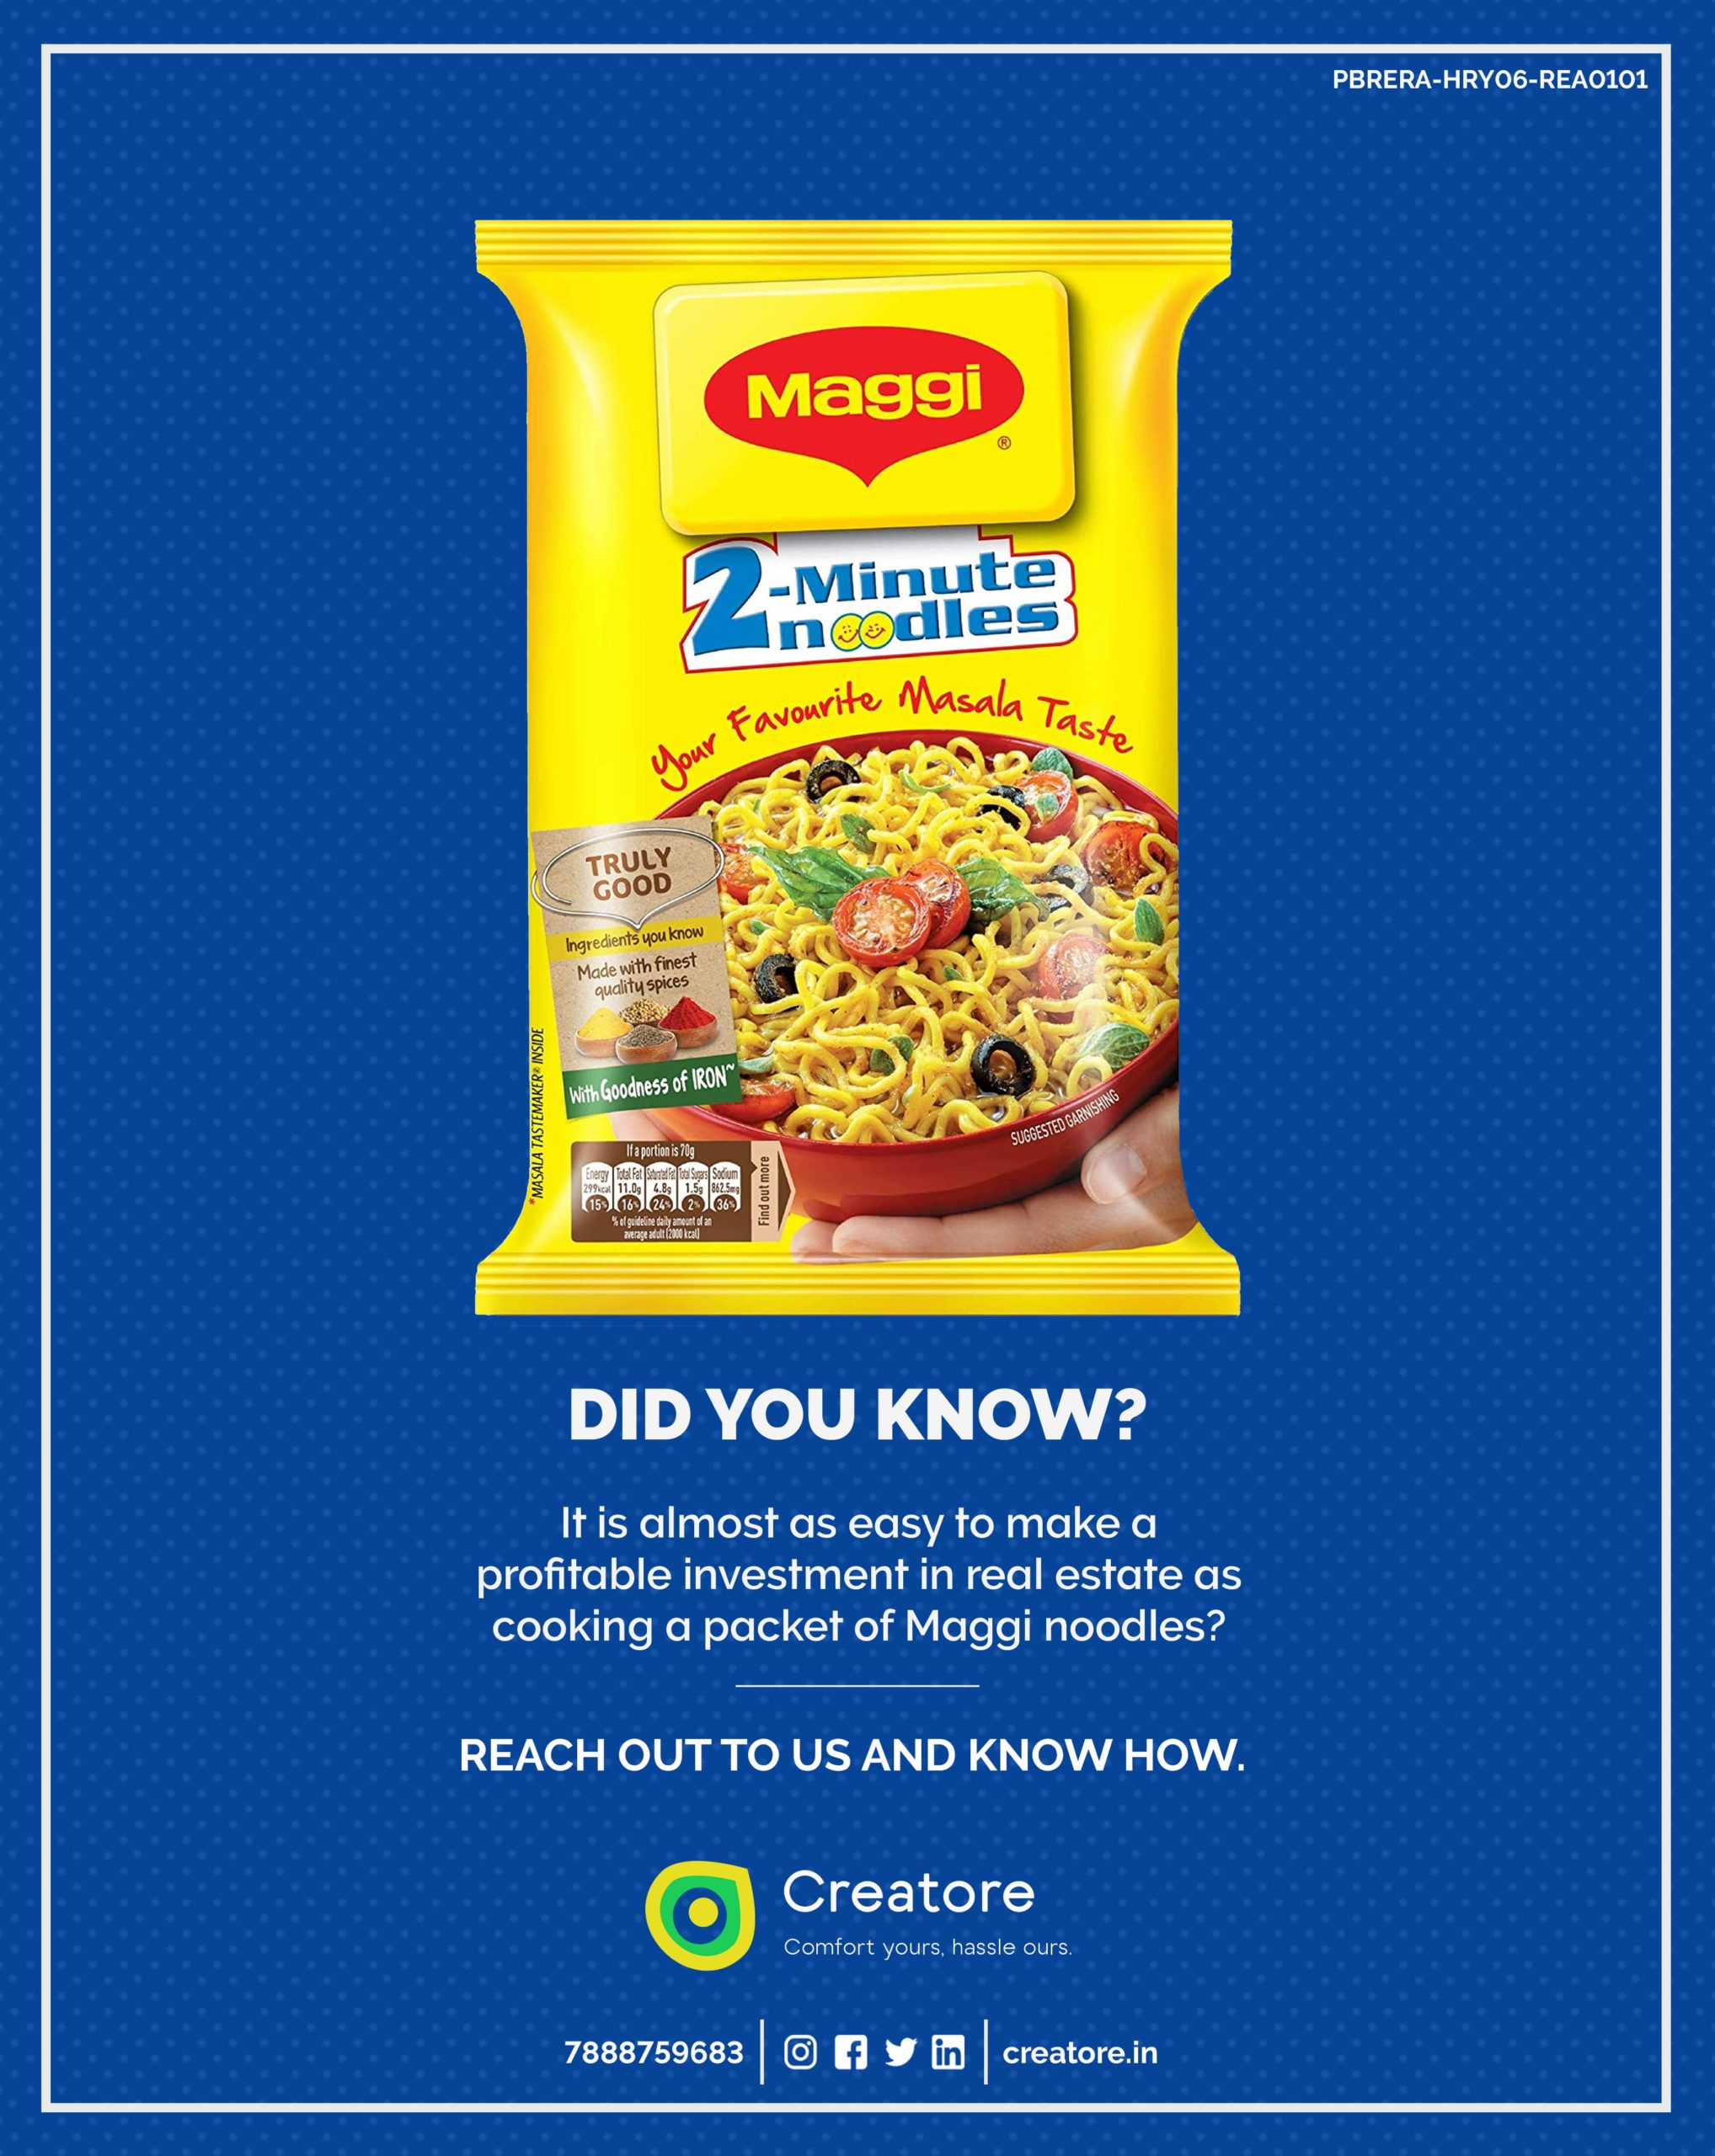 Creative Advertising and Marketing Agency Creative Ad Services Maggi